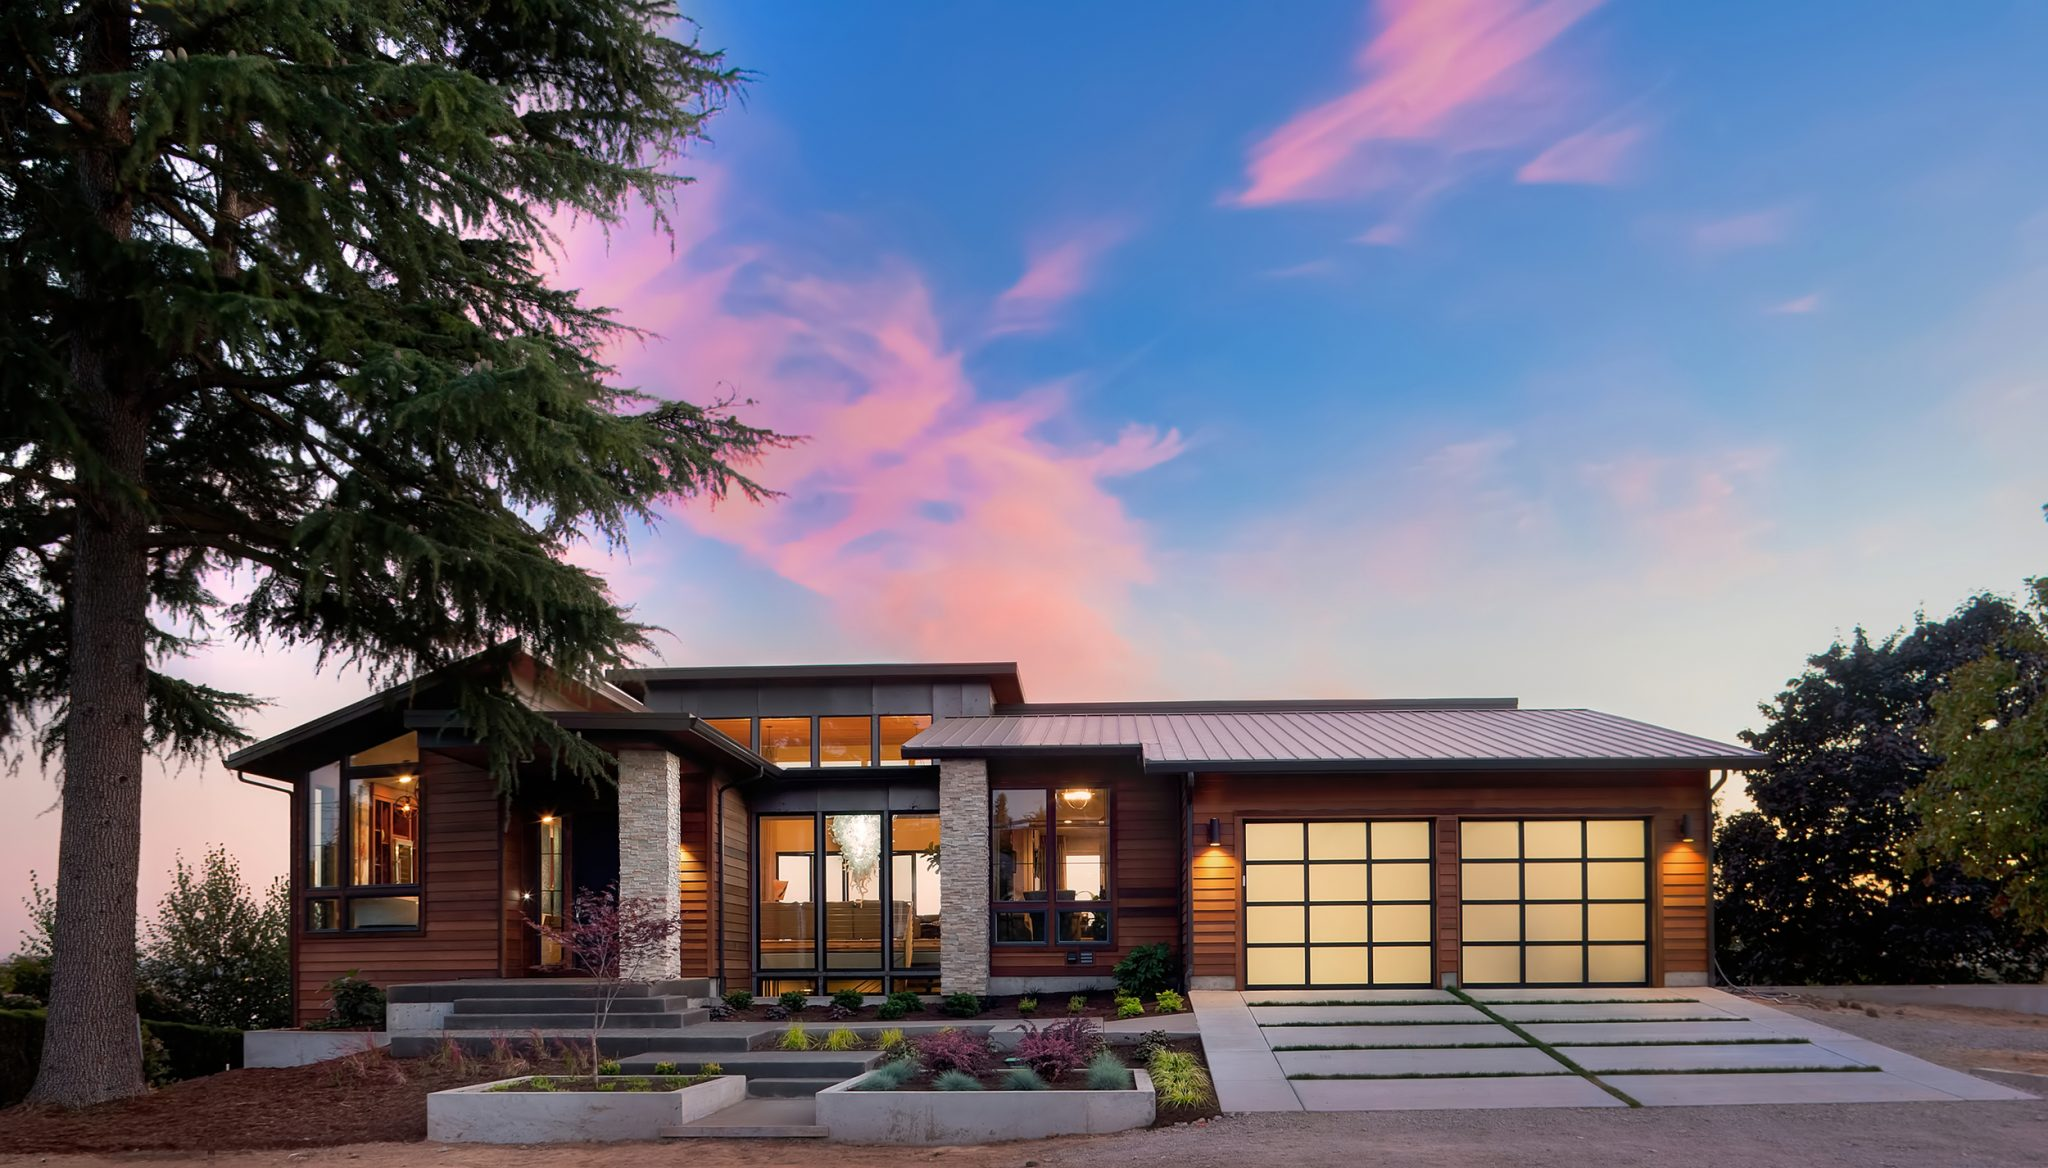 Driveway Designs for Modern Home Turf & Pavers